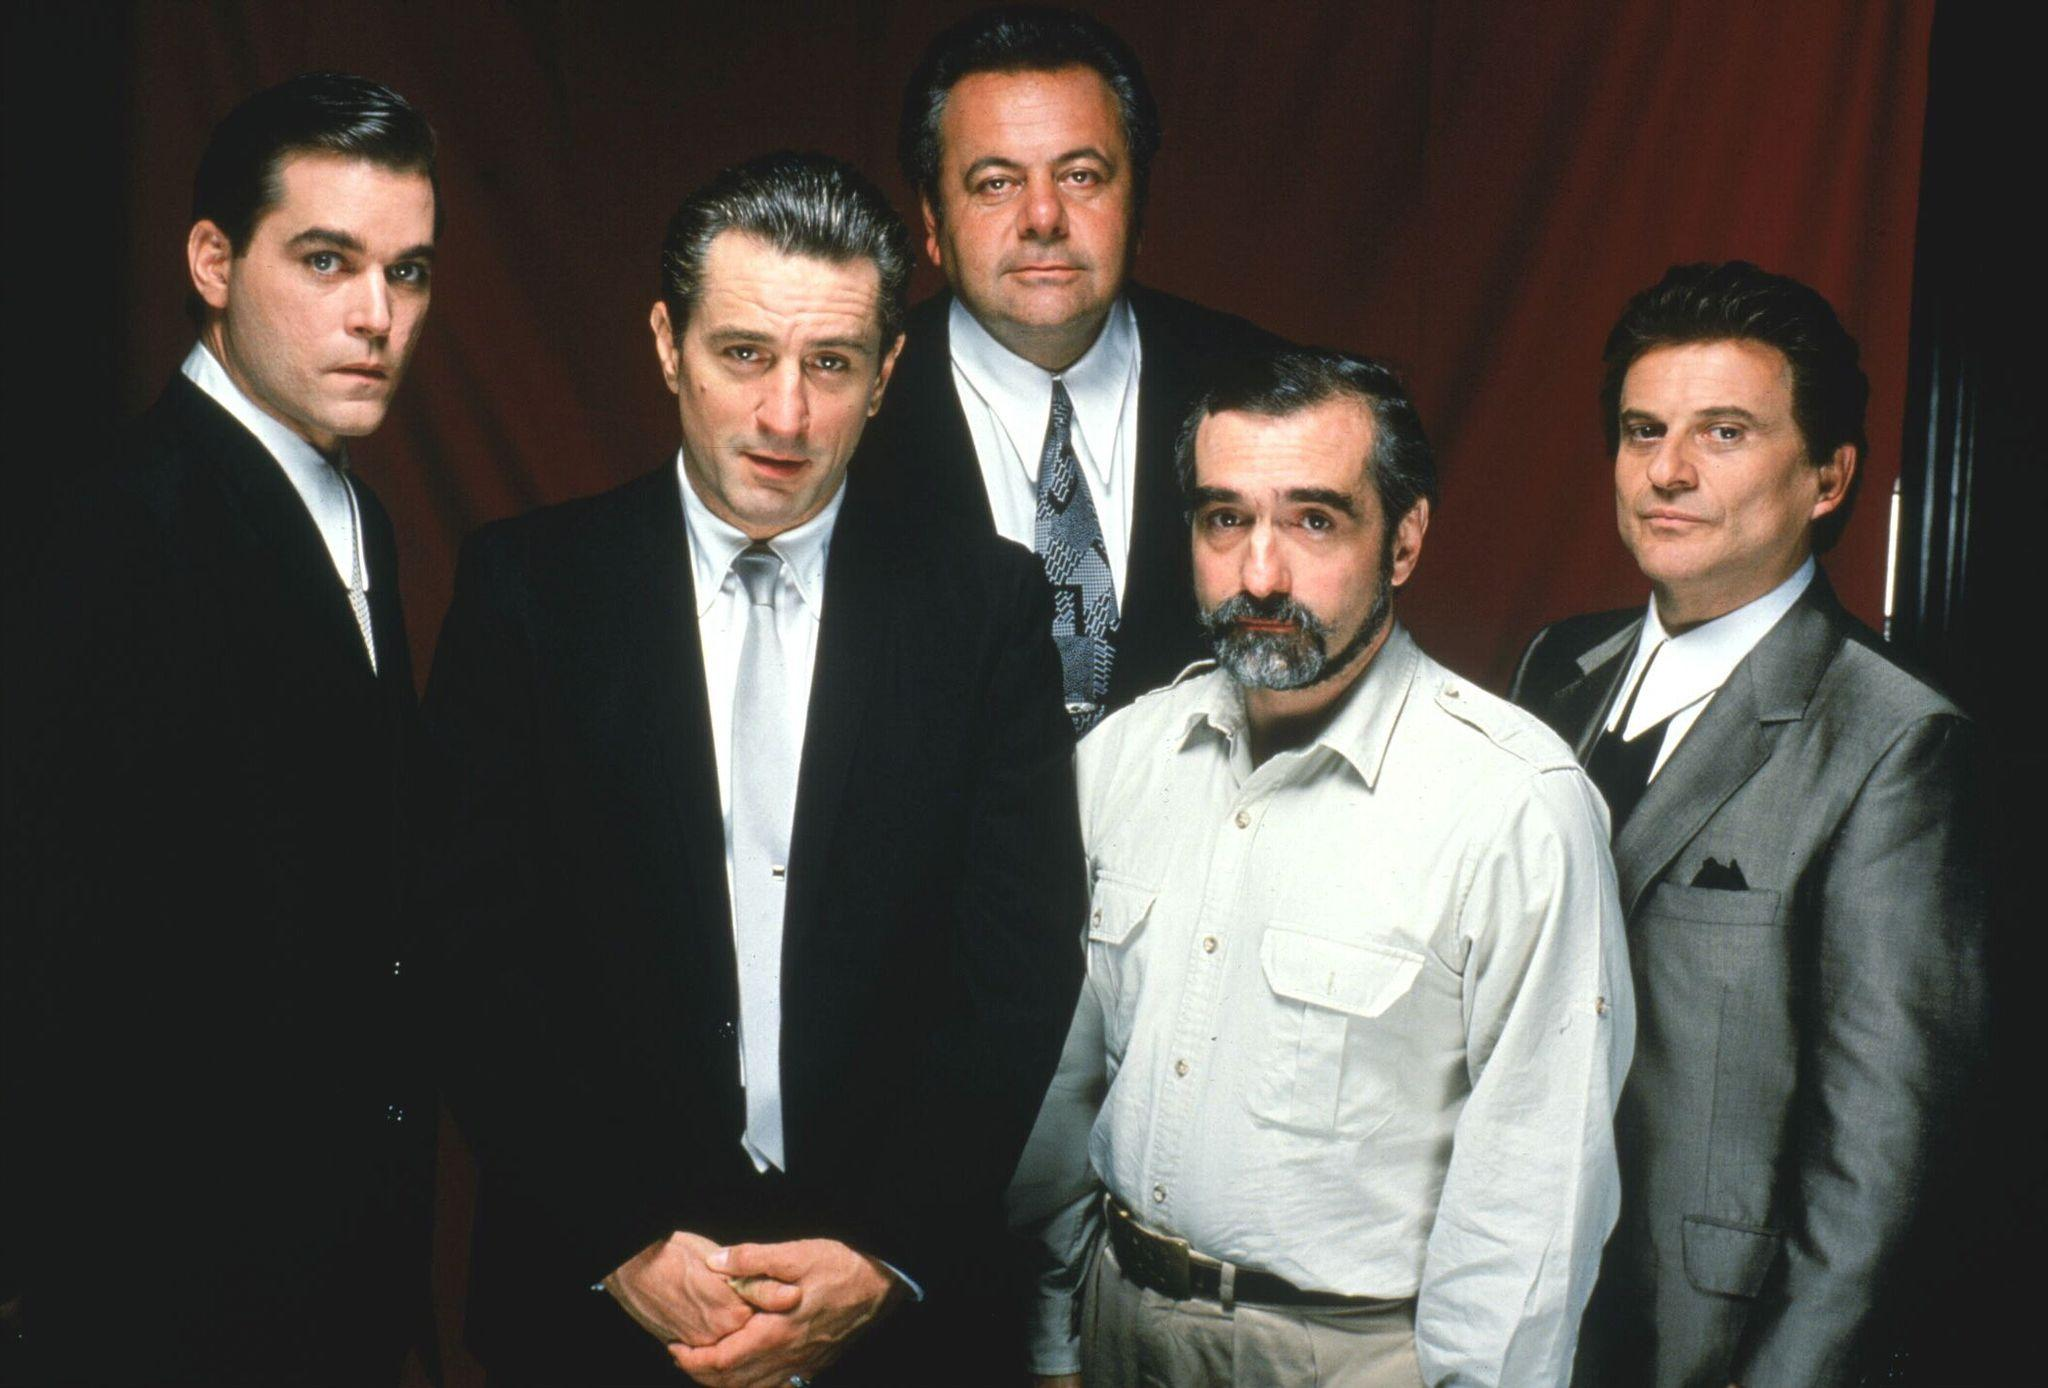 goodfellas-cast-with-young-scorsese-top-10-martin-scorsese-movies